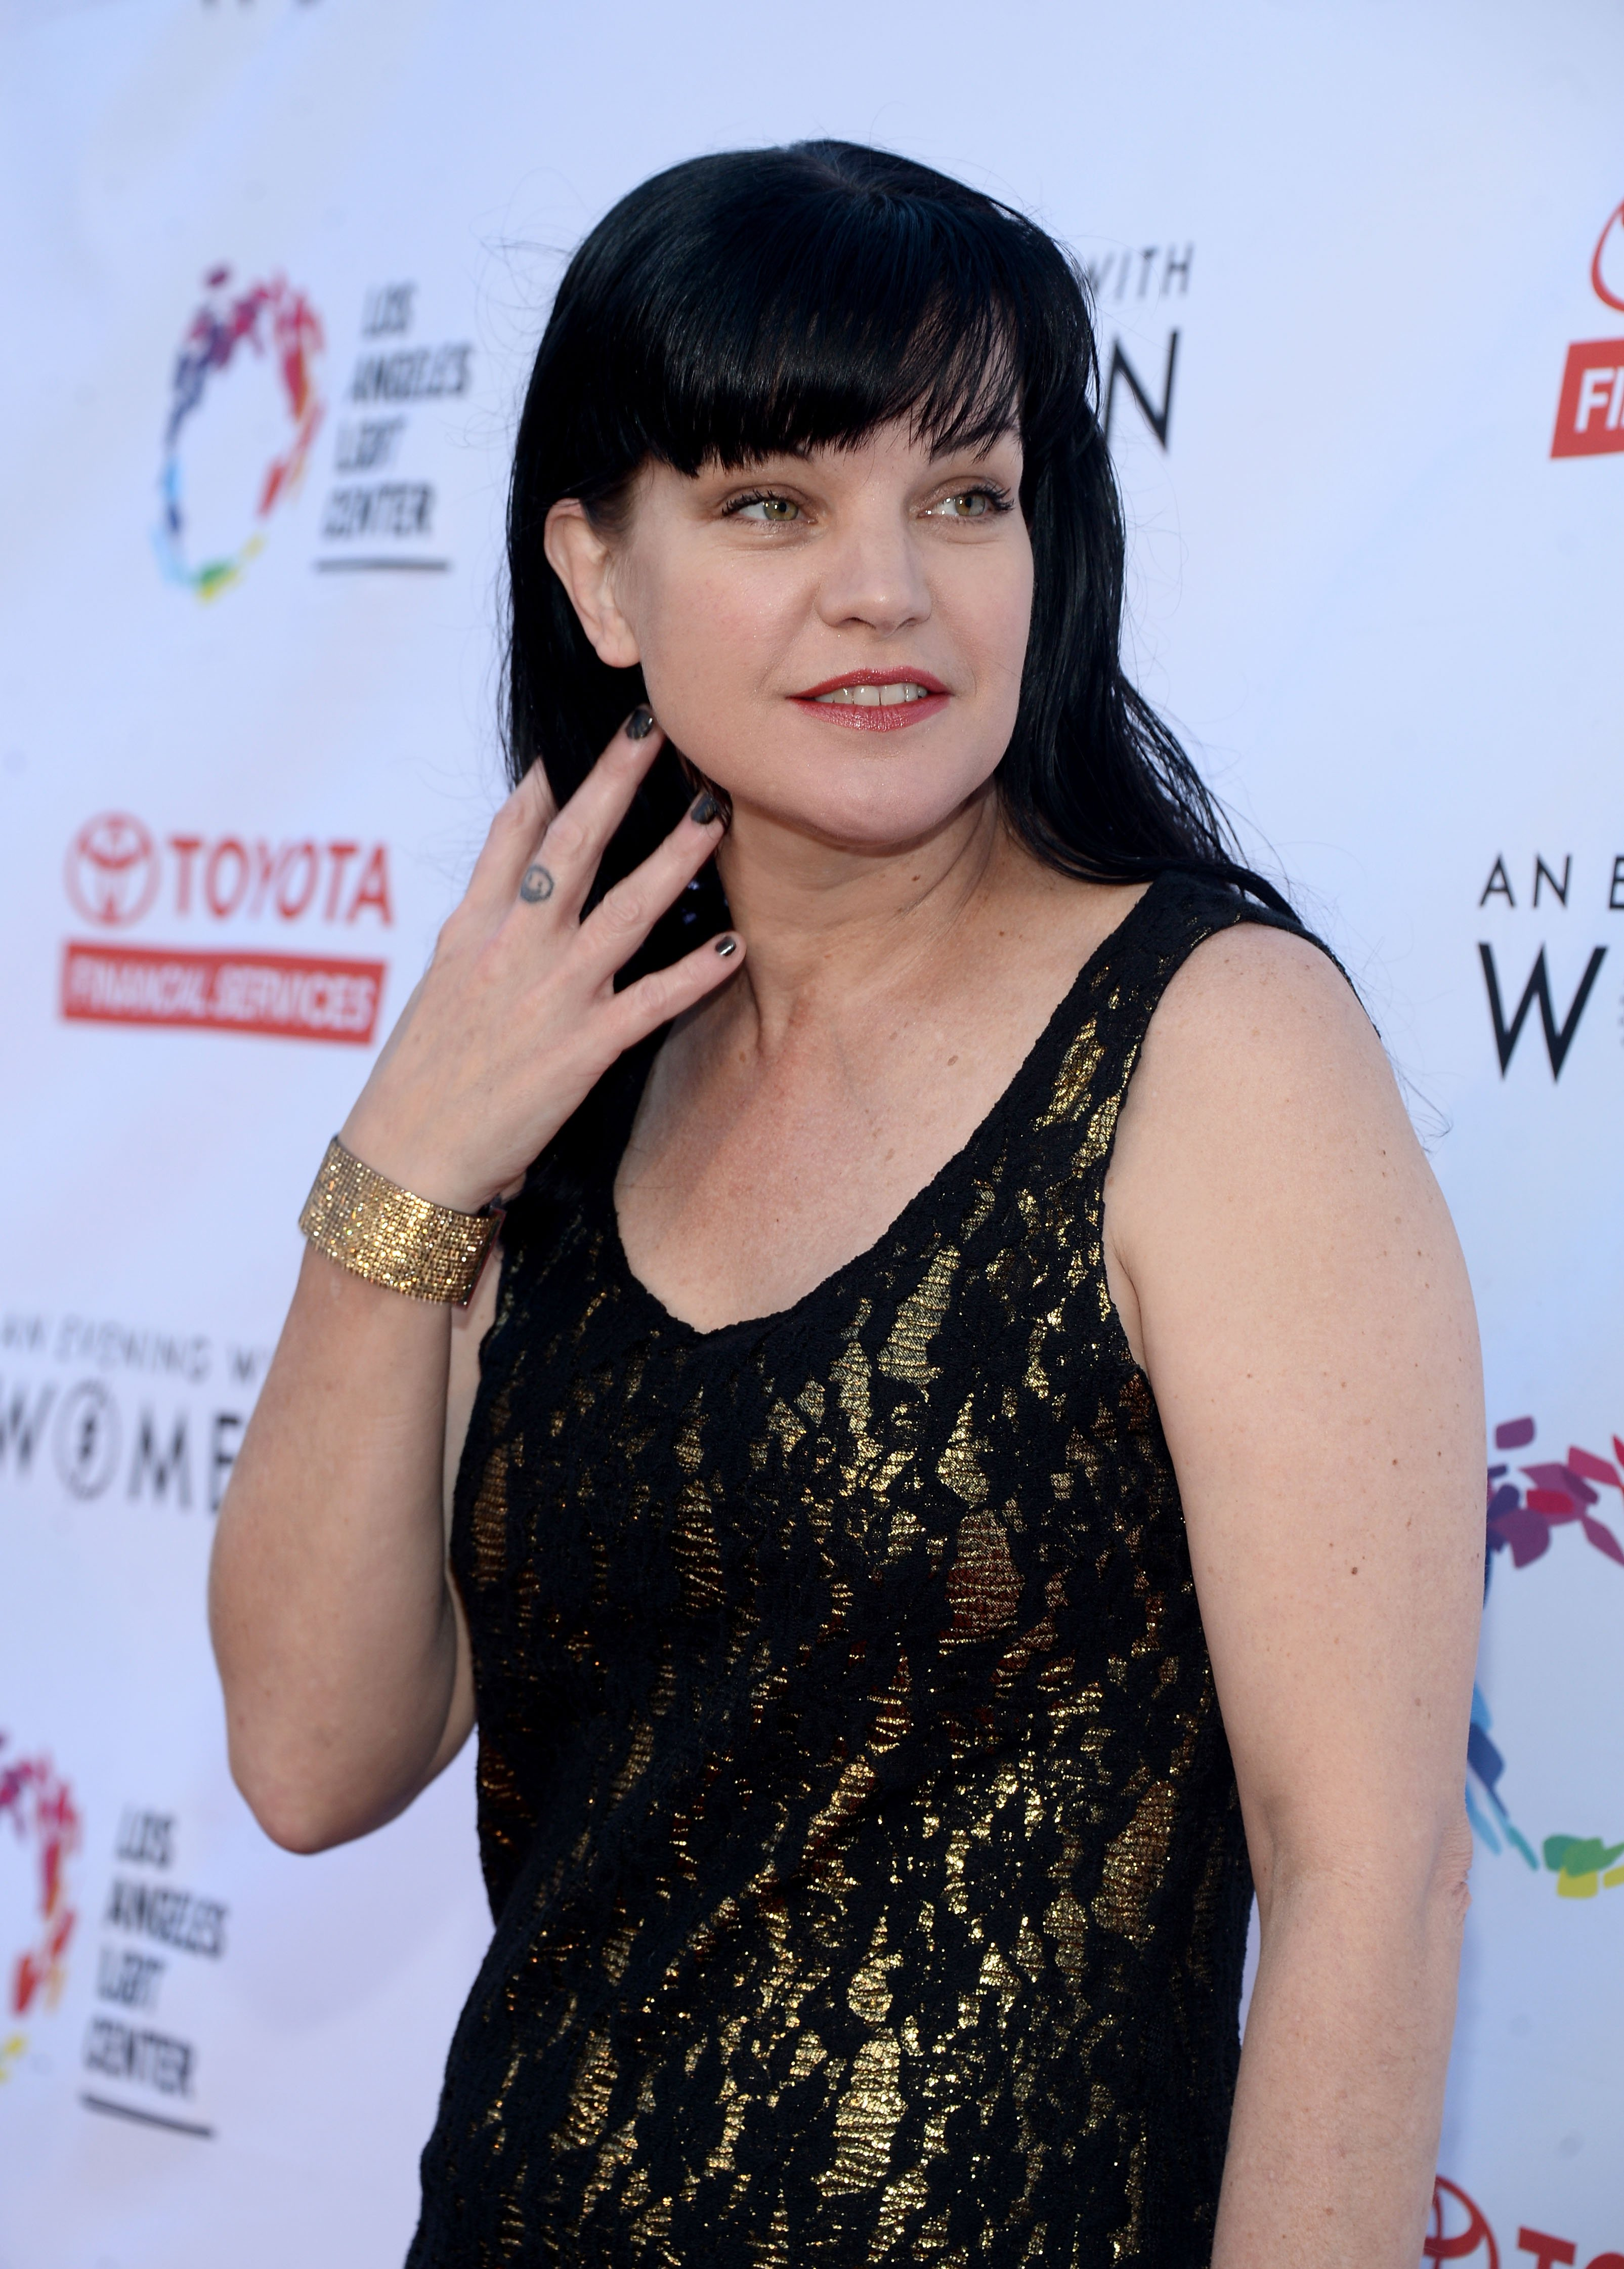 Pauley Perrette attends An Evening with Women benefit in Los Angeles, California on May 21, 2016 | Photo: Getty Images